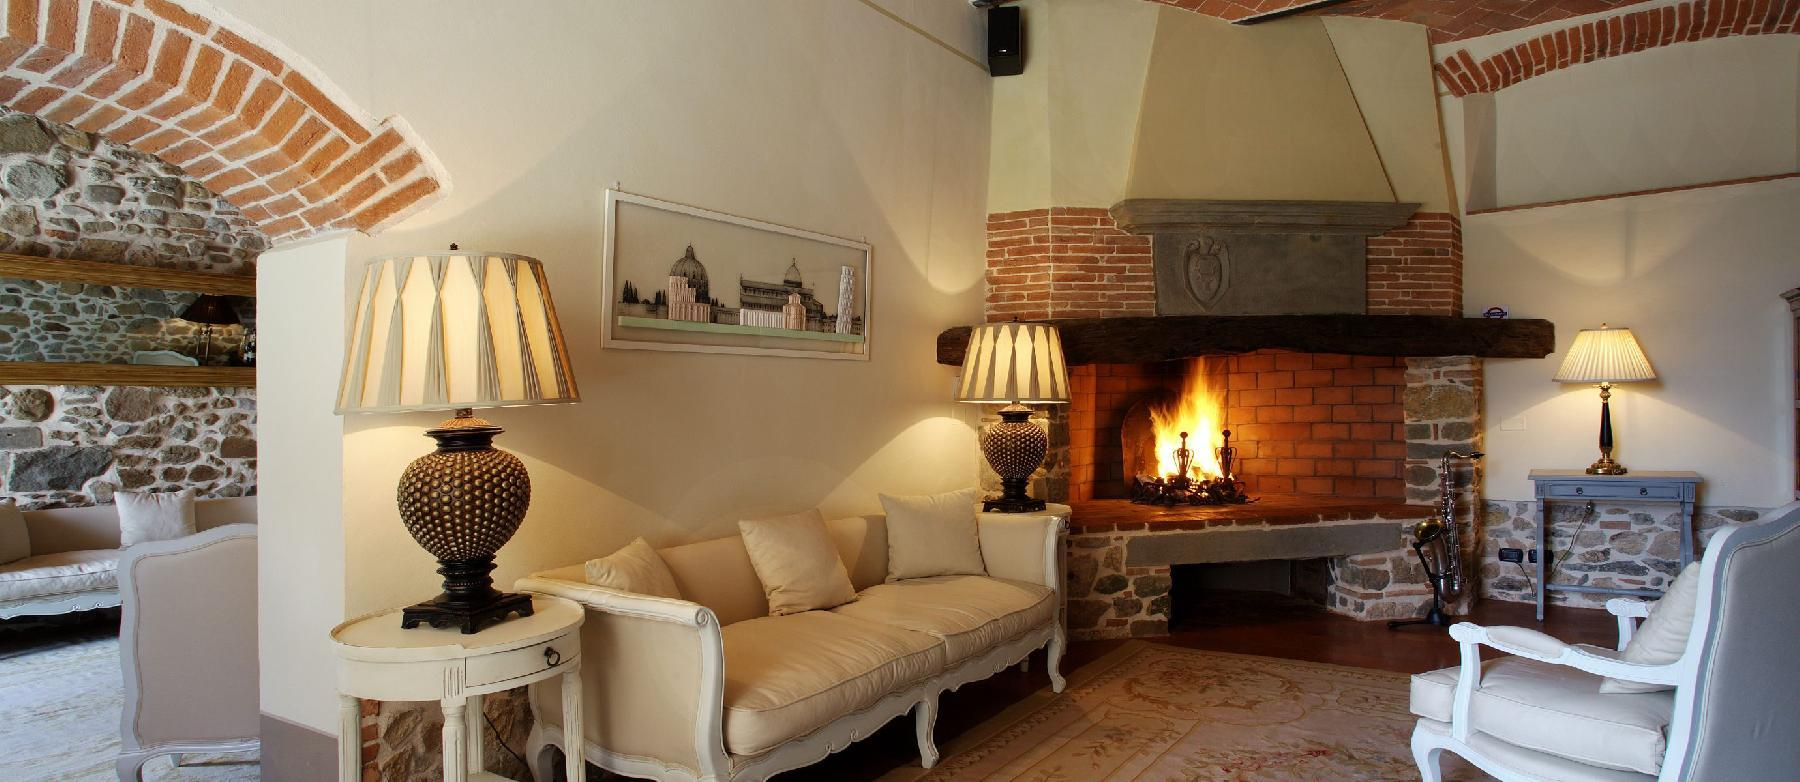 delightful living room of Tuscany - The Tuscan Mansion luxury apartment